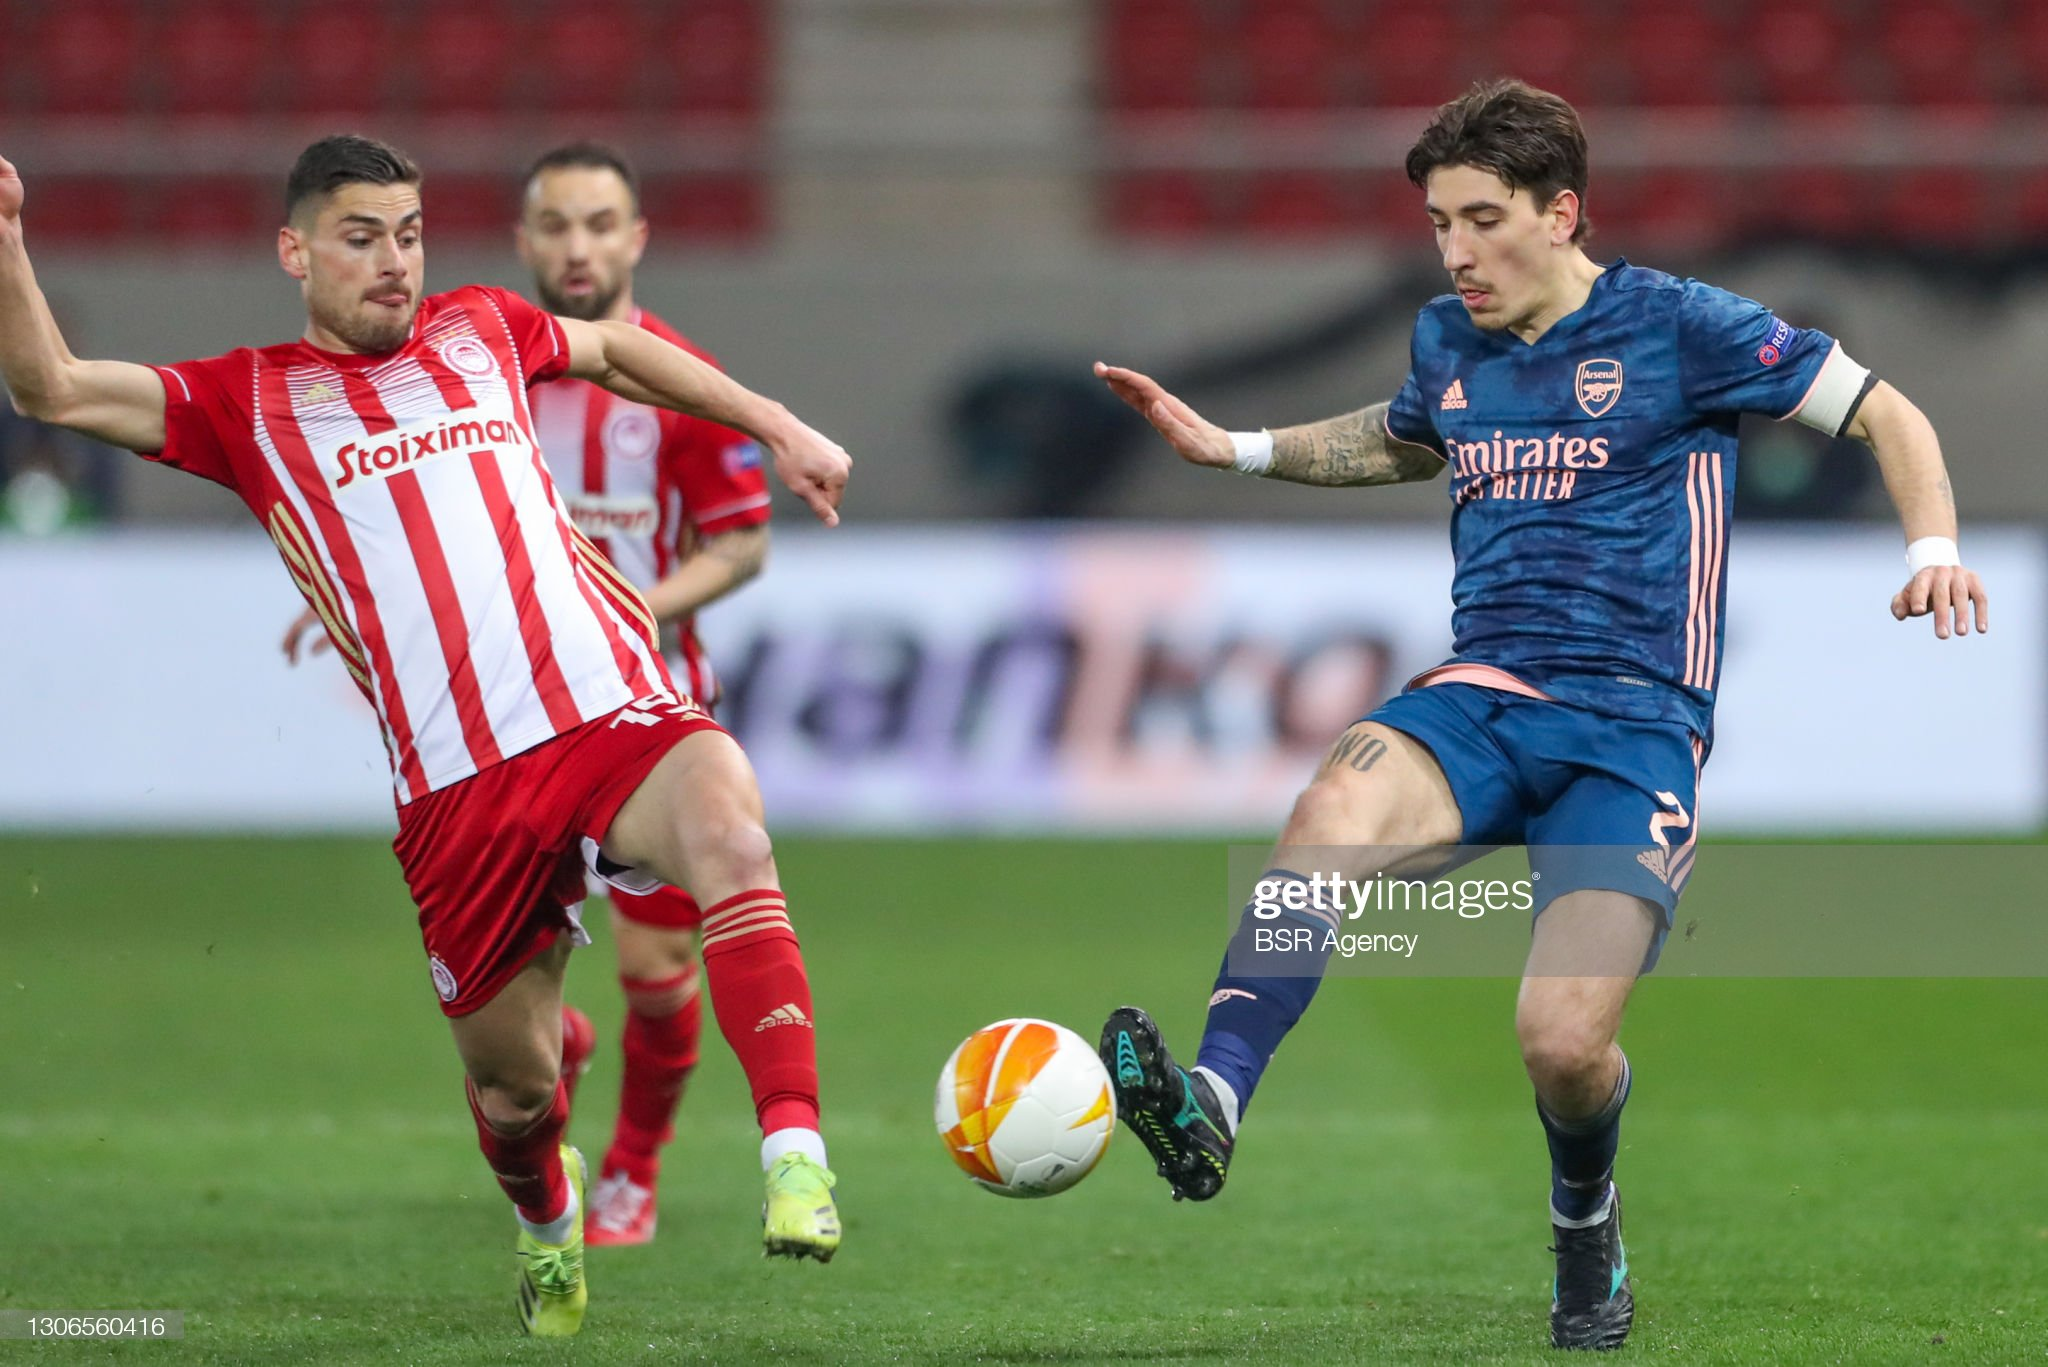 Arsenal vs Olympiacos preview, prediction and odds